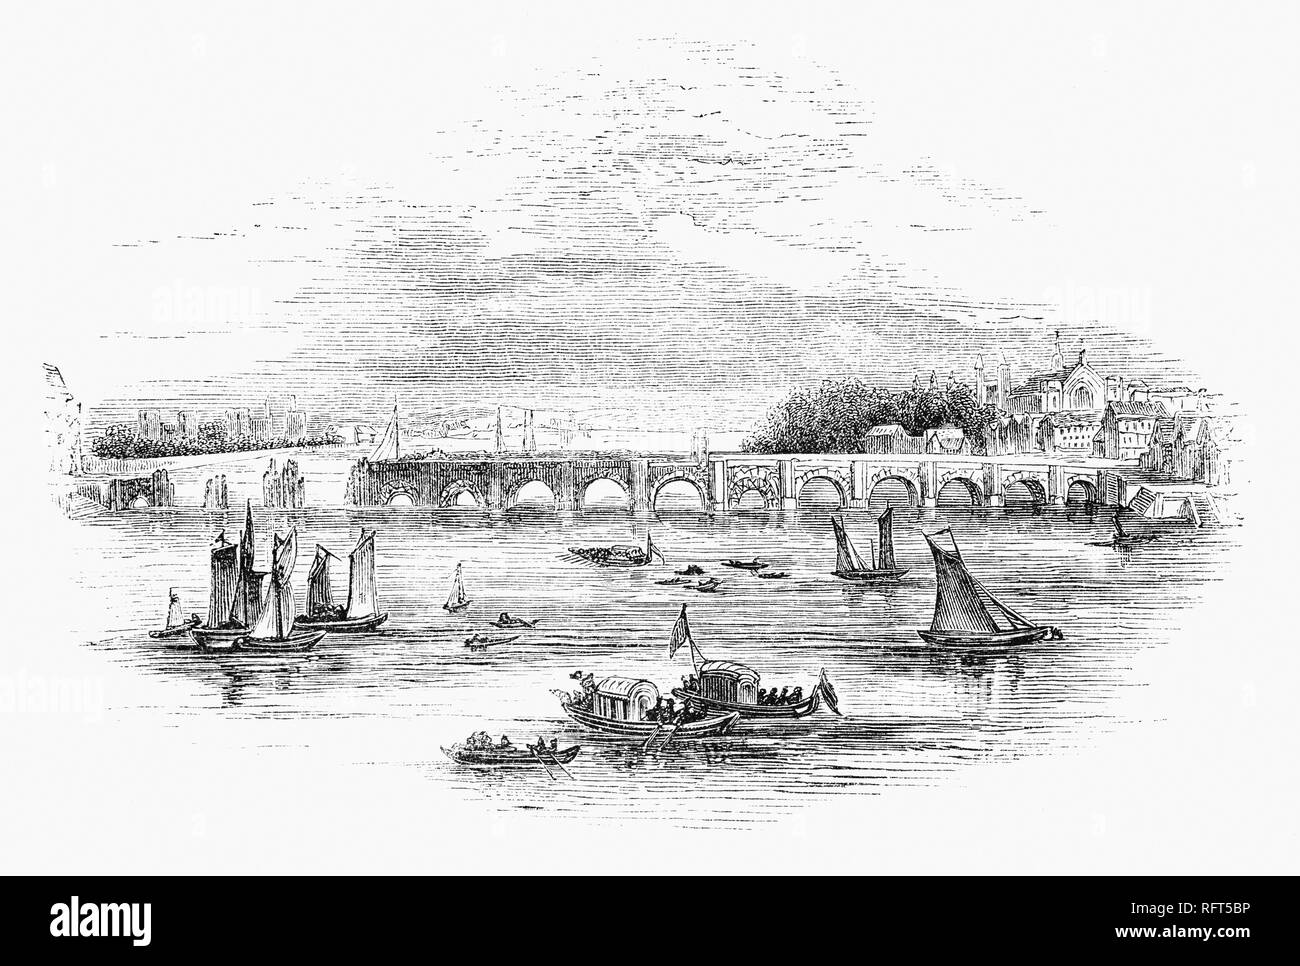 The building of Westminster Bridge, a road-and-foot-traffic bridge over the River Thames in London, linking Westminster on the west side and Lambeth on the east side.  Financed by private capital, lotteries and grants, Westminster Bridge was built between 1739–1750, under the supervision of the Swiss engineer Charles Labelye. and opened on 18 November 1750. - Stock Image